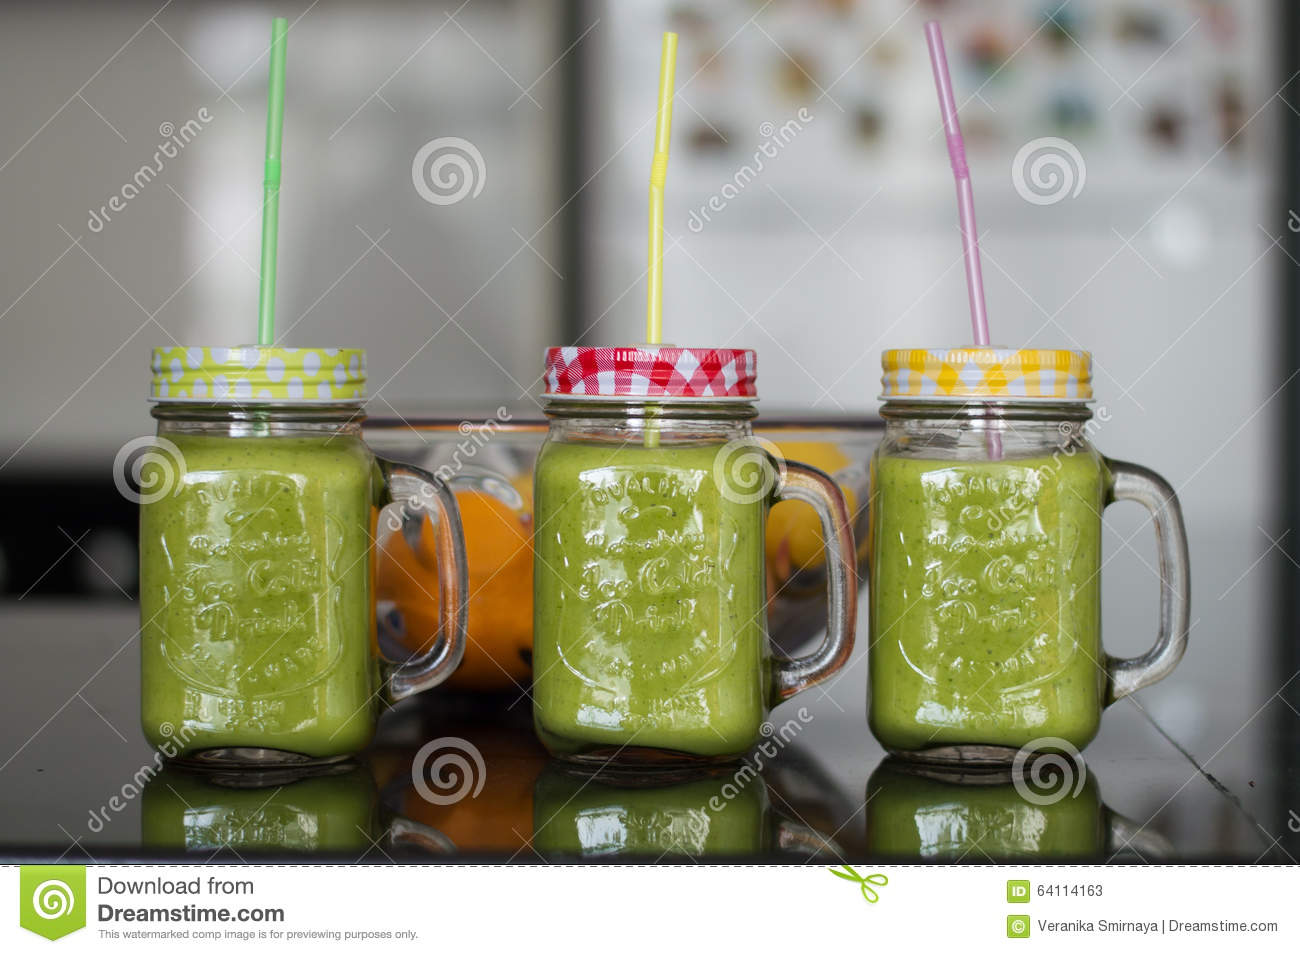 Smoothie in glasses with straws